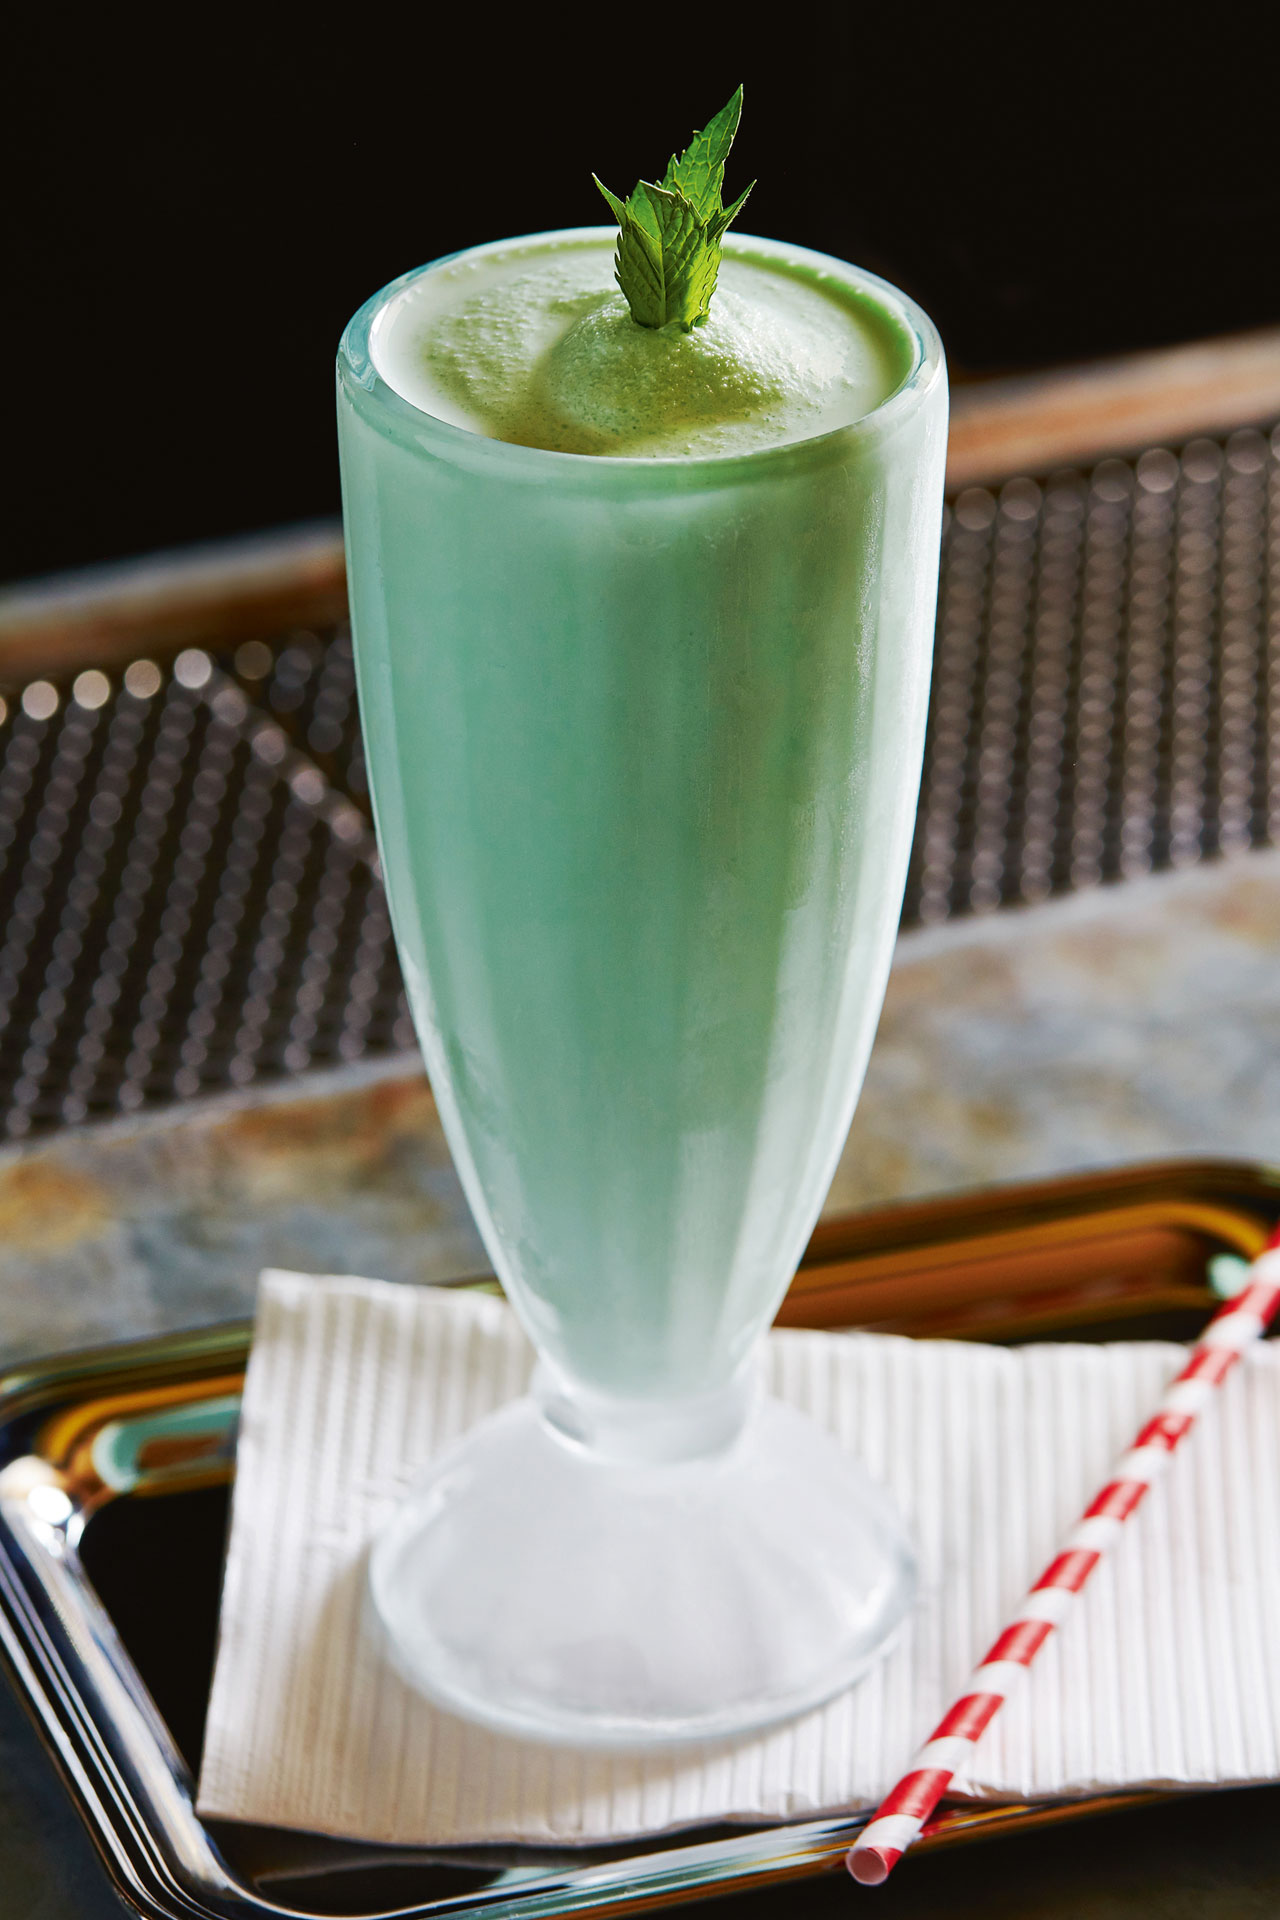 Jeffrey Morgenthaler's Grasshopper is a blended ice cream version of the classic cocktail